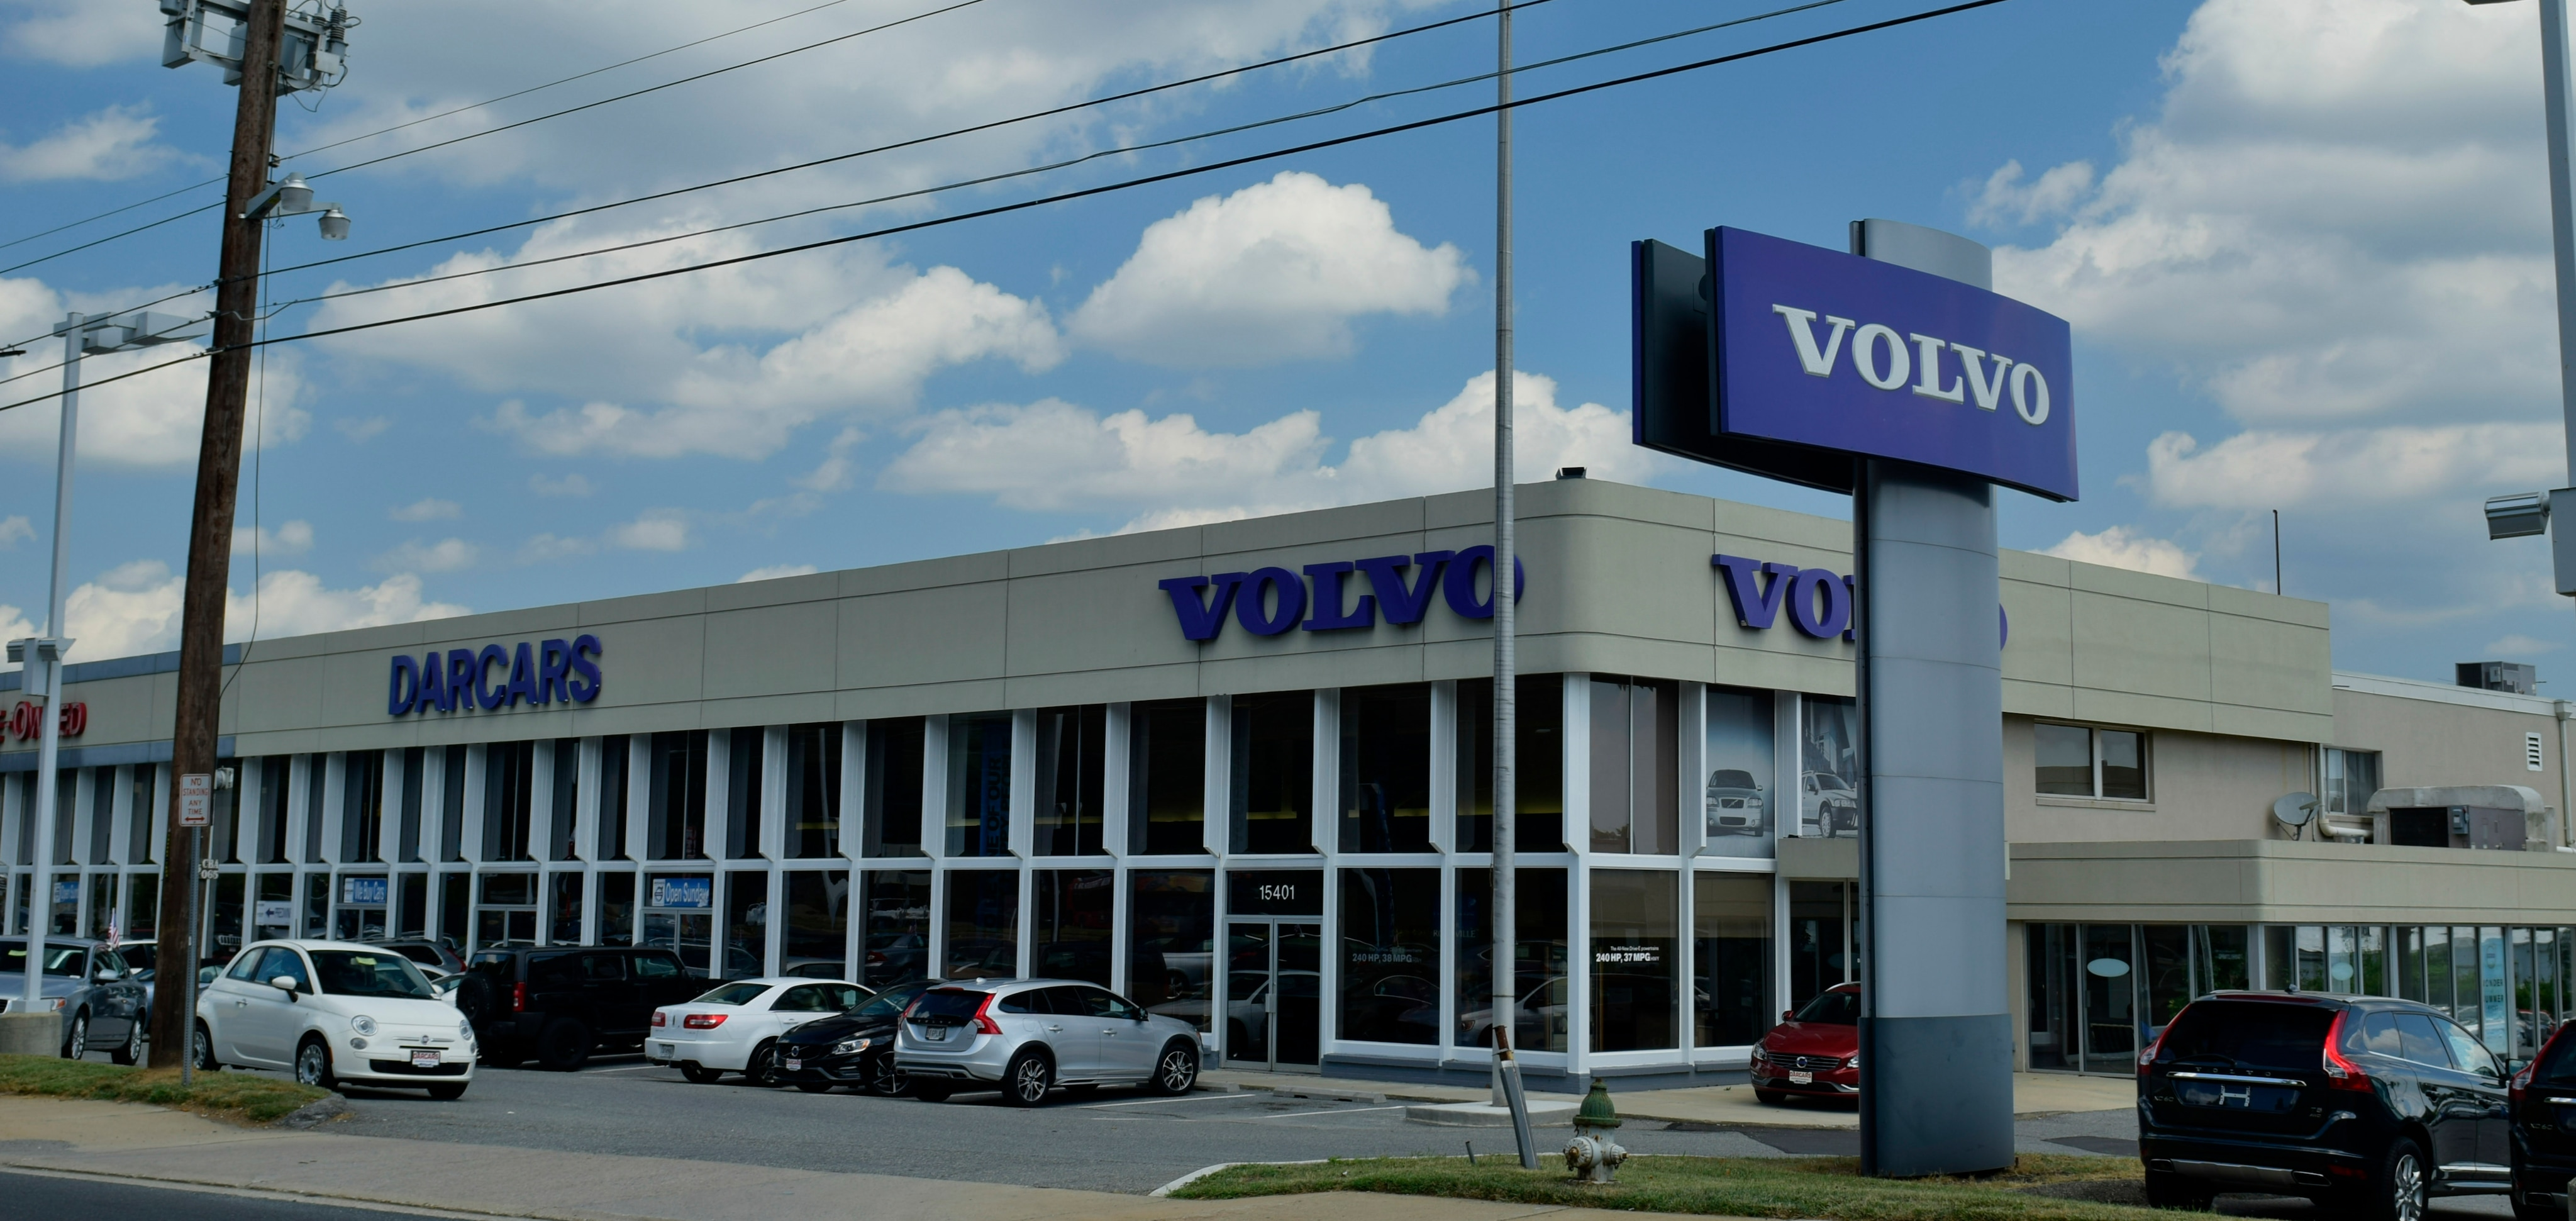 DARCARS Volvo Cars in Rockville